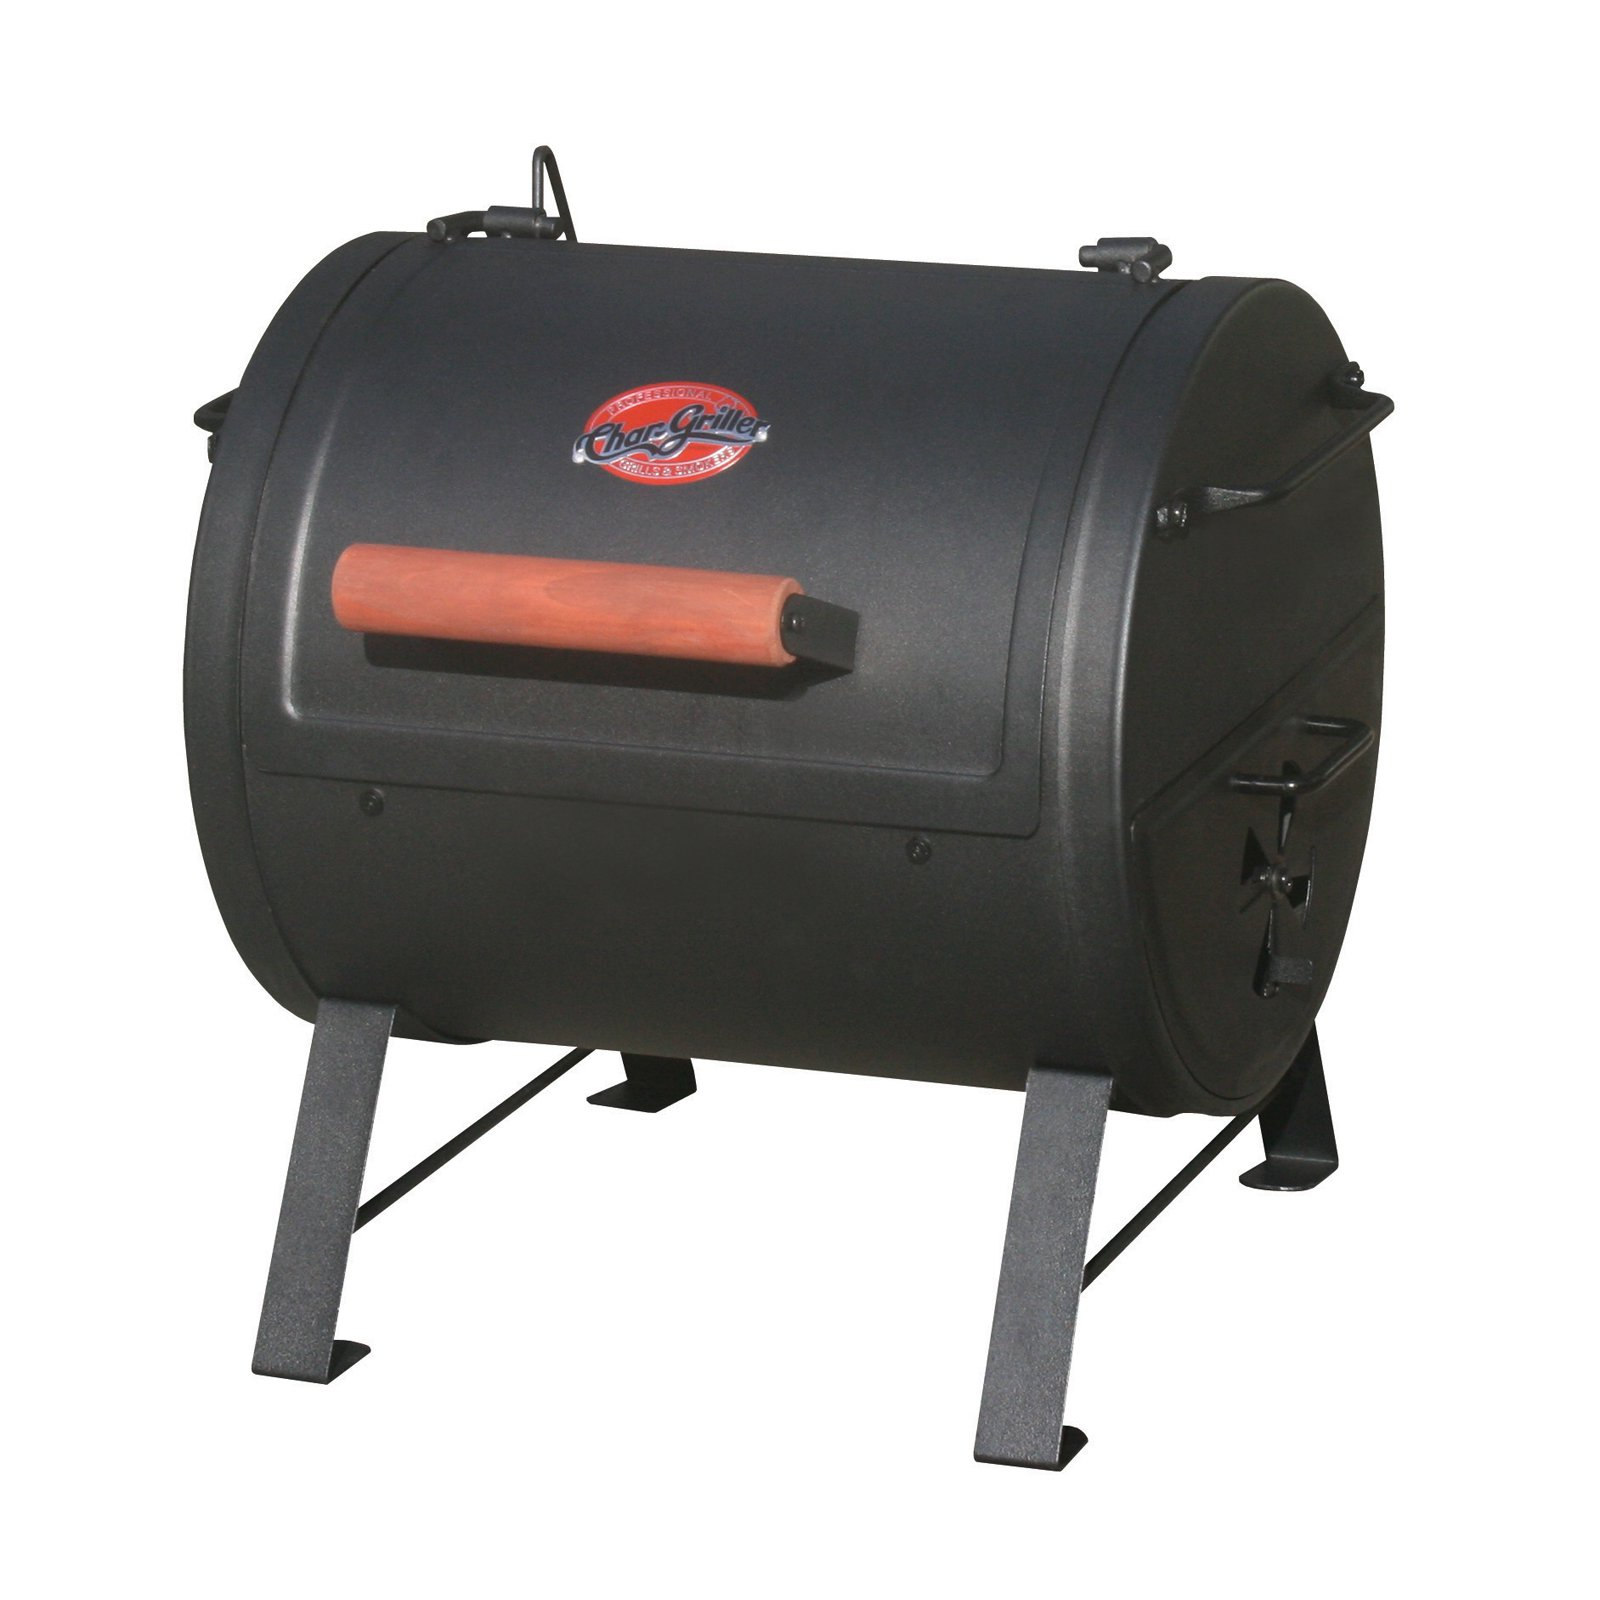 Char Griller 250 Sq Inch Table Top Charcoal Grill And Smoker Black